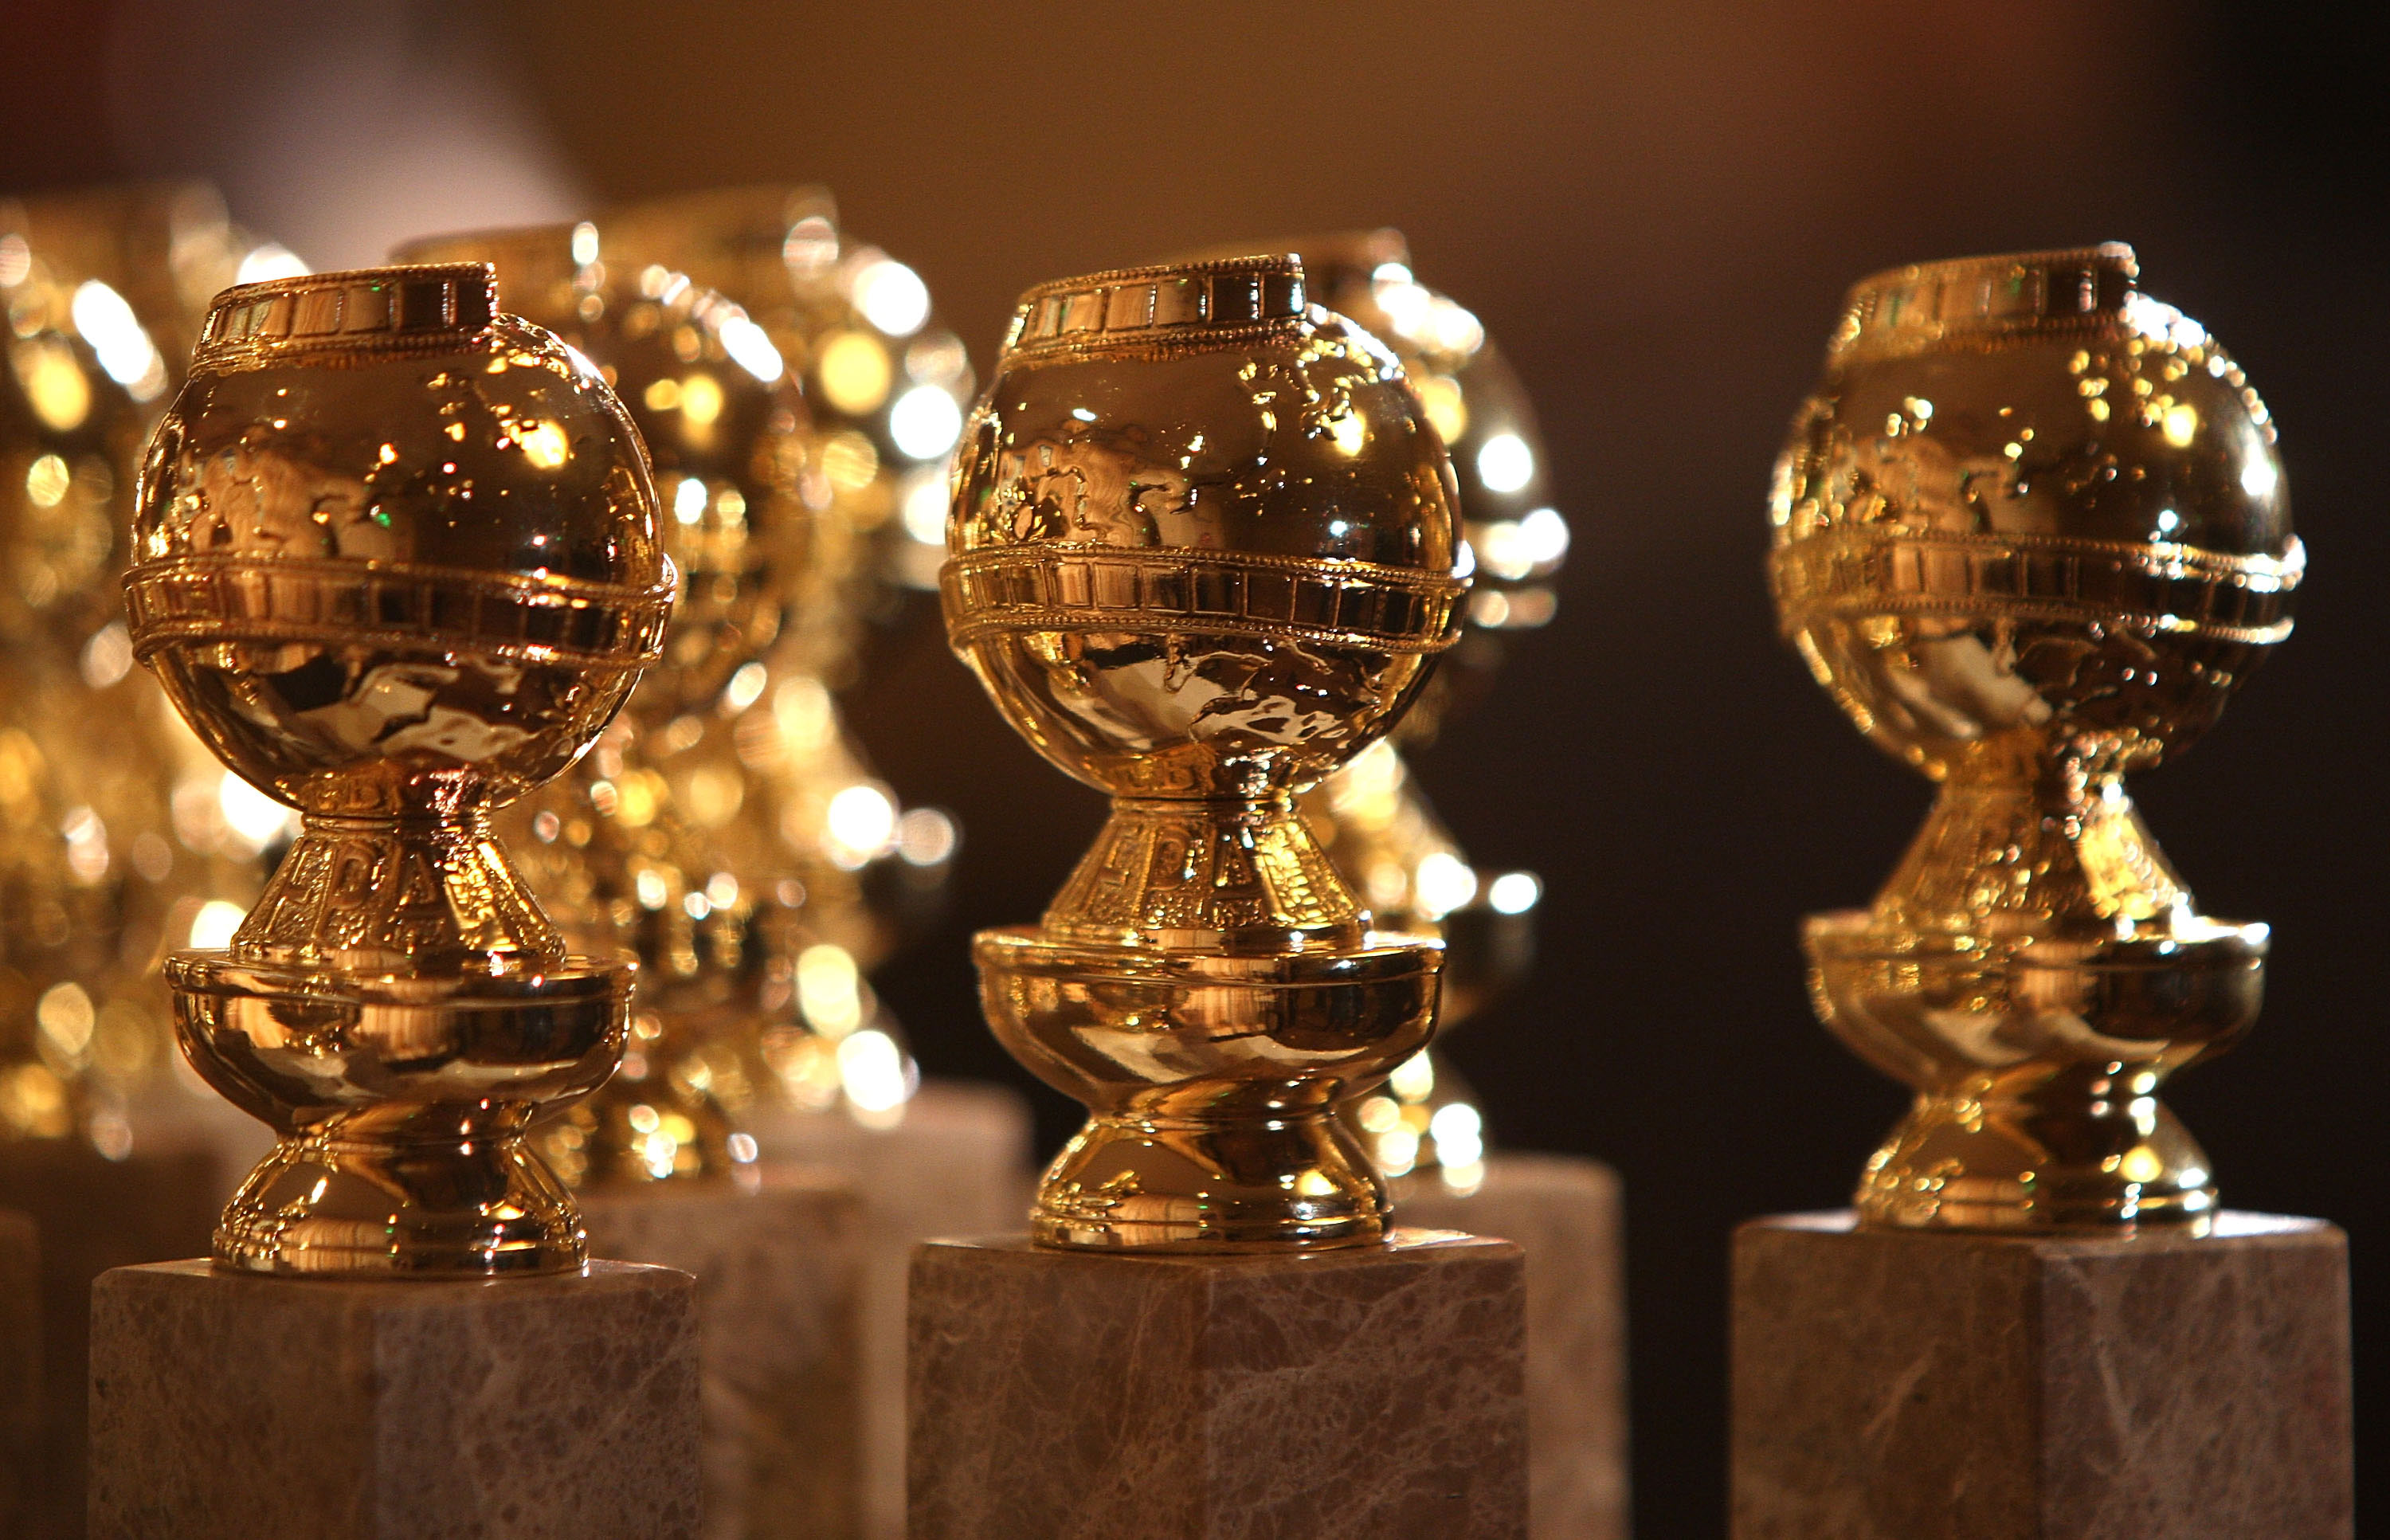 NBC will not air the next Golden Globes after diversity controversy